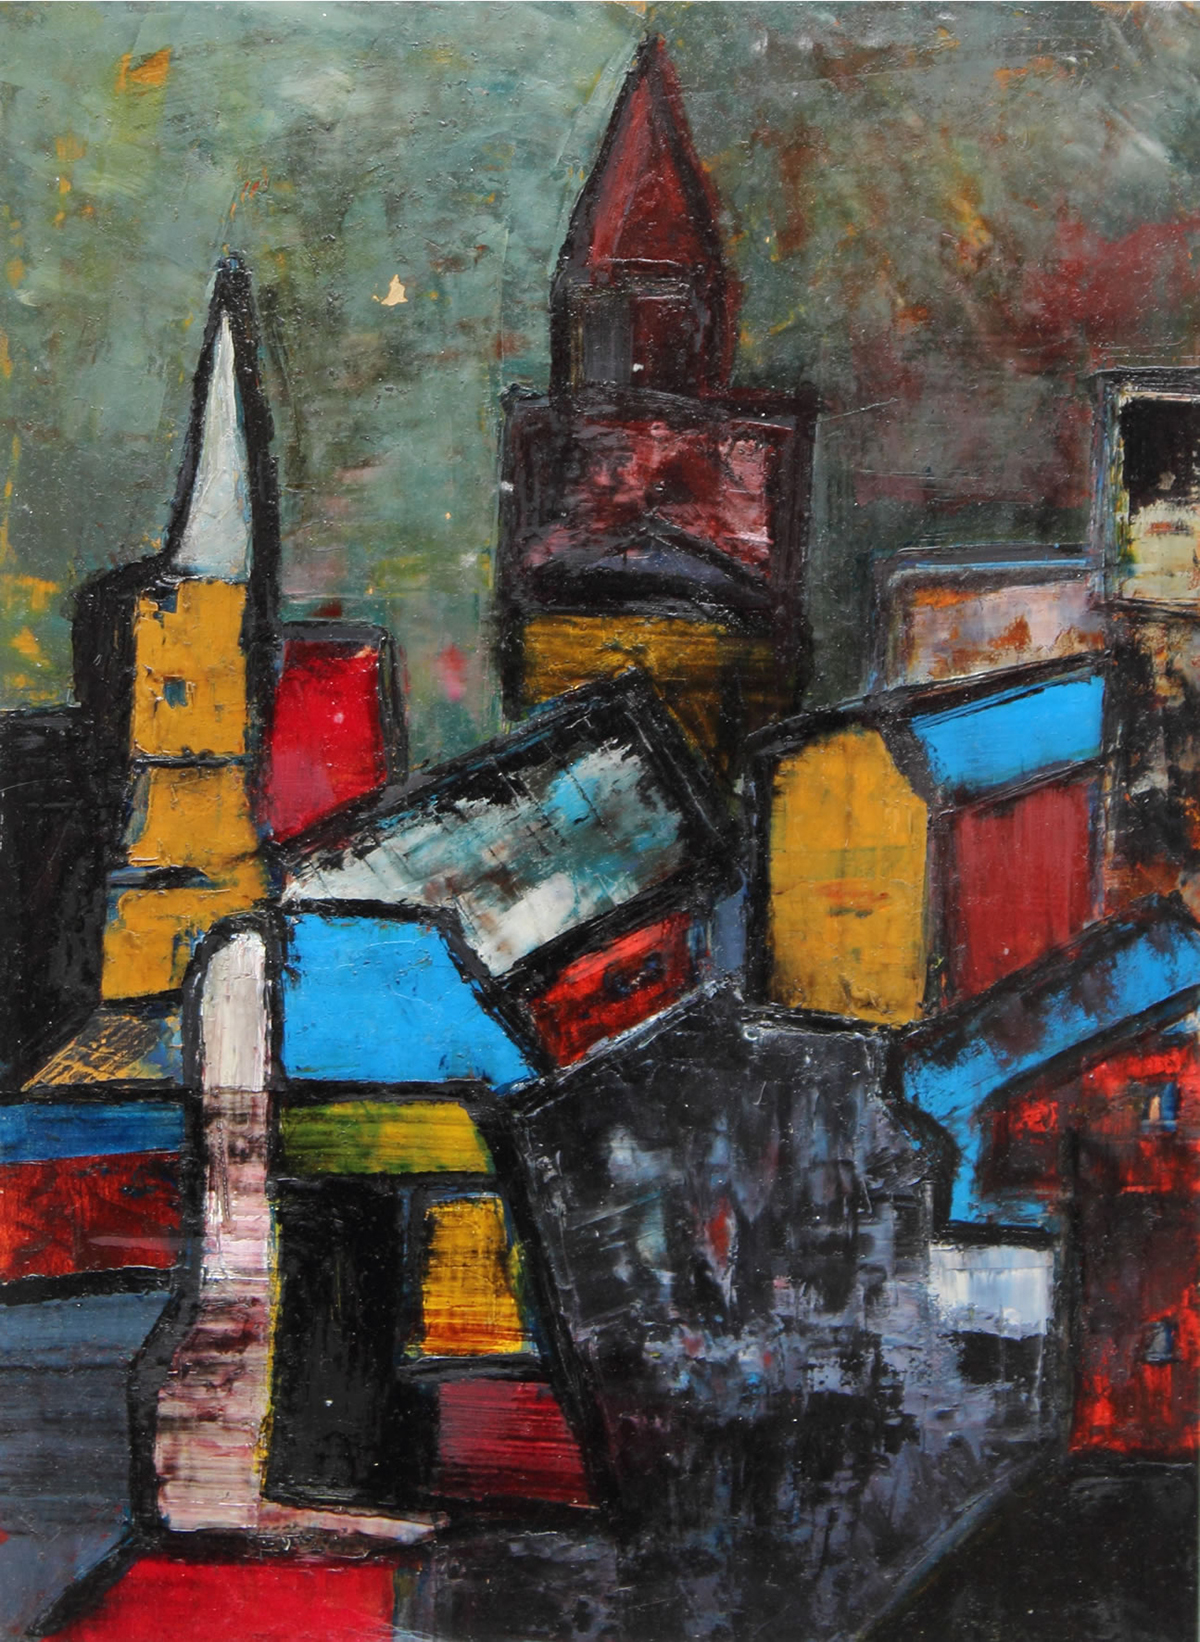 Image of Ribeiro's Untitled (Townscape), 1958.